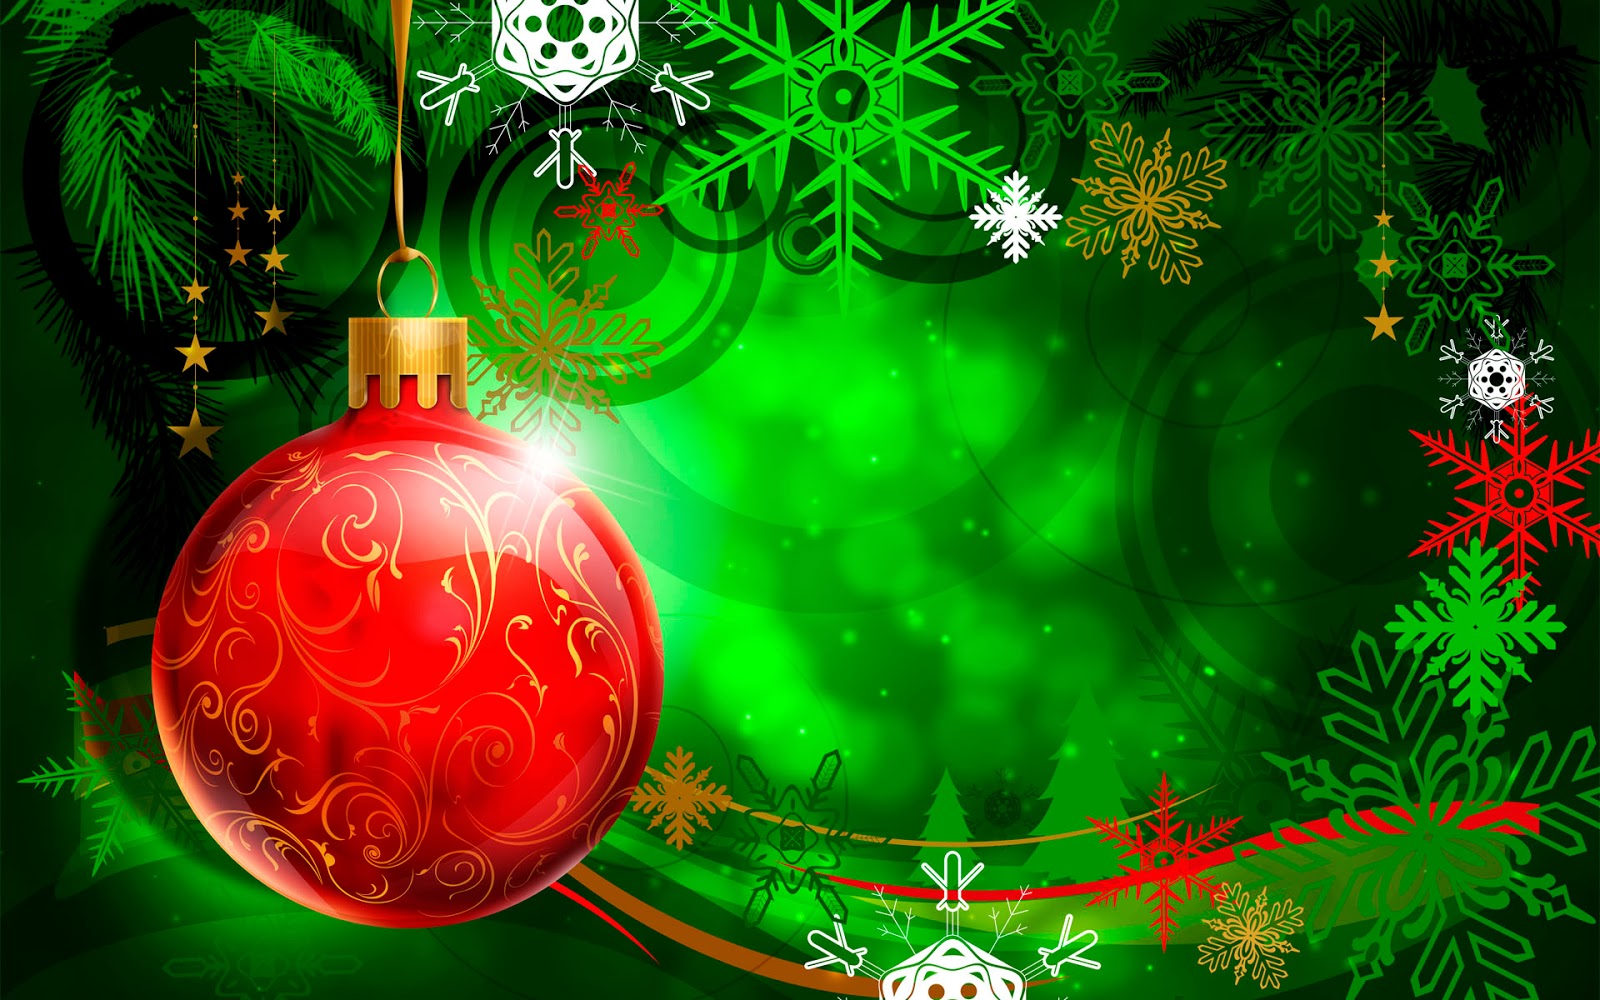 Green Christmas Background HD Wallpaper